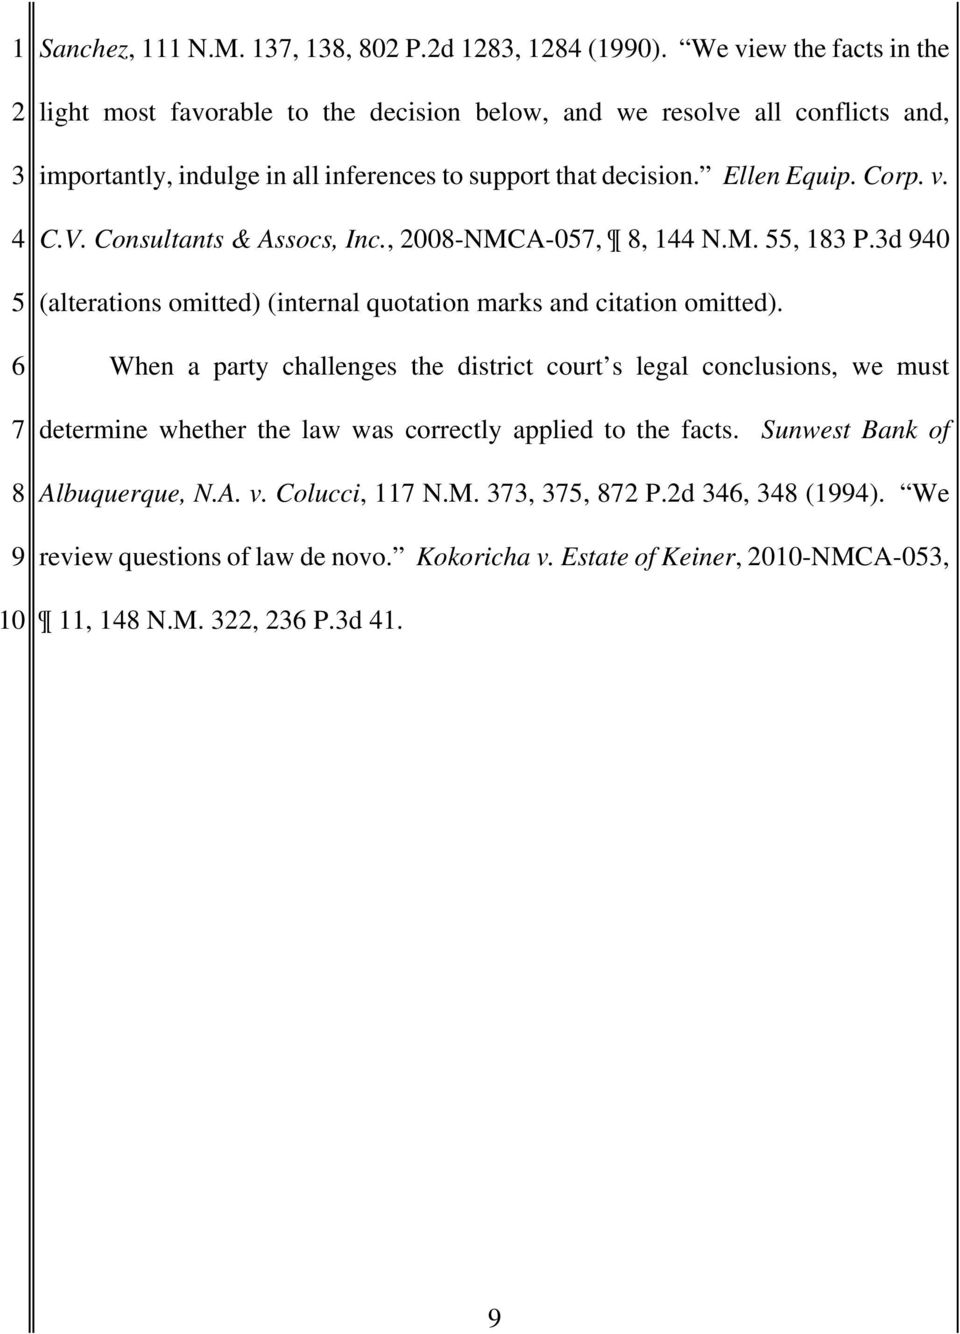 decision. Ellen Equip. Corp. v. C.V. Consultants & Assocs, Inc., 00-NMCA-0,, 1 N.M., 1 P.d 0 (alterations omitted) (internal quotation marks and citation omitted).